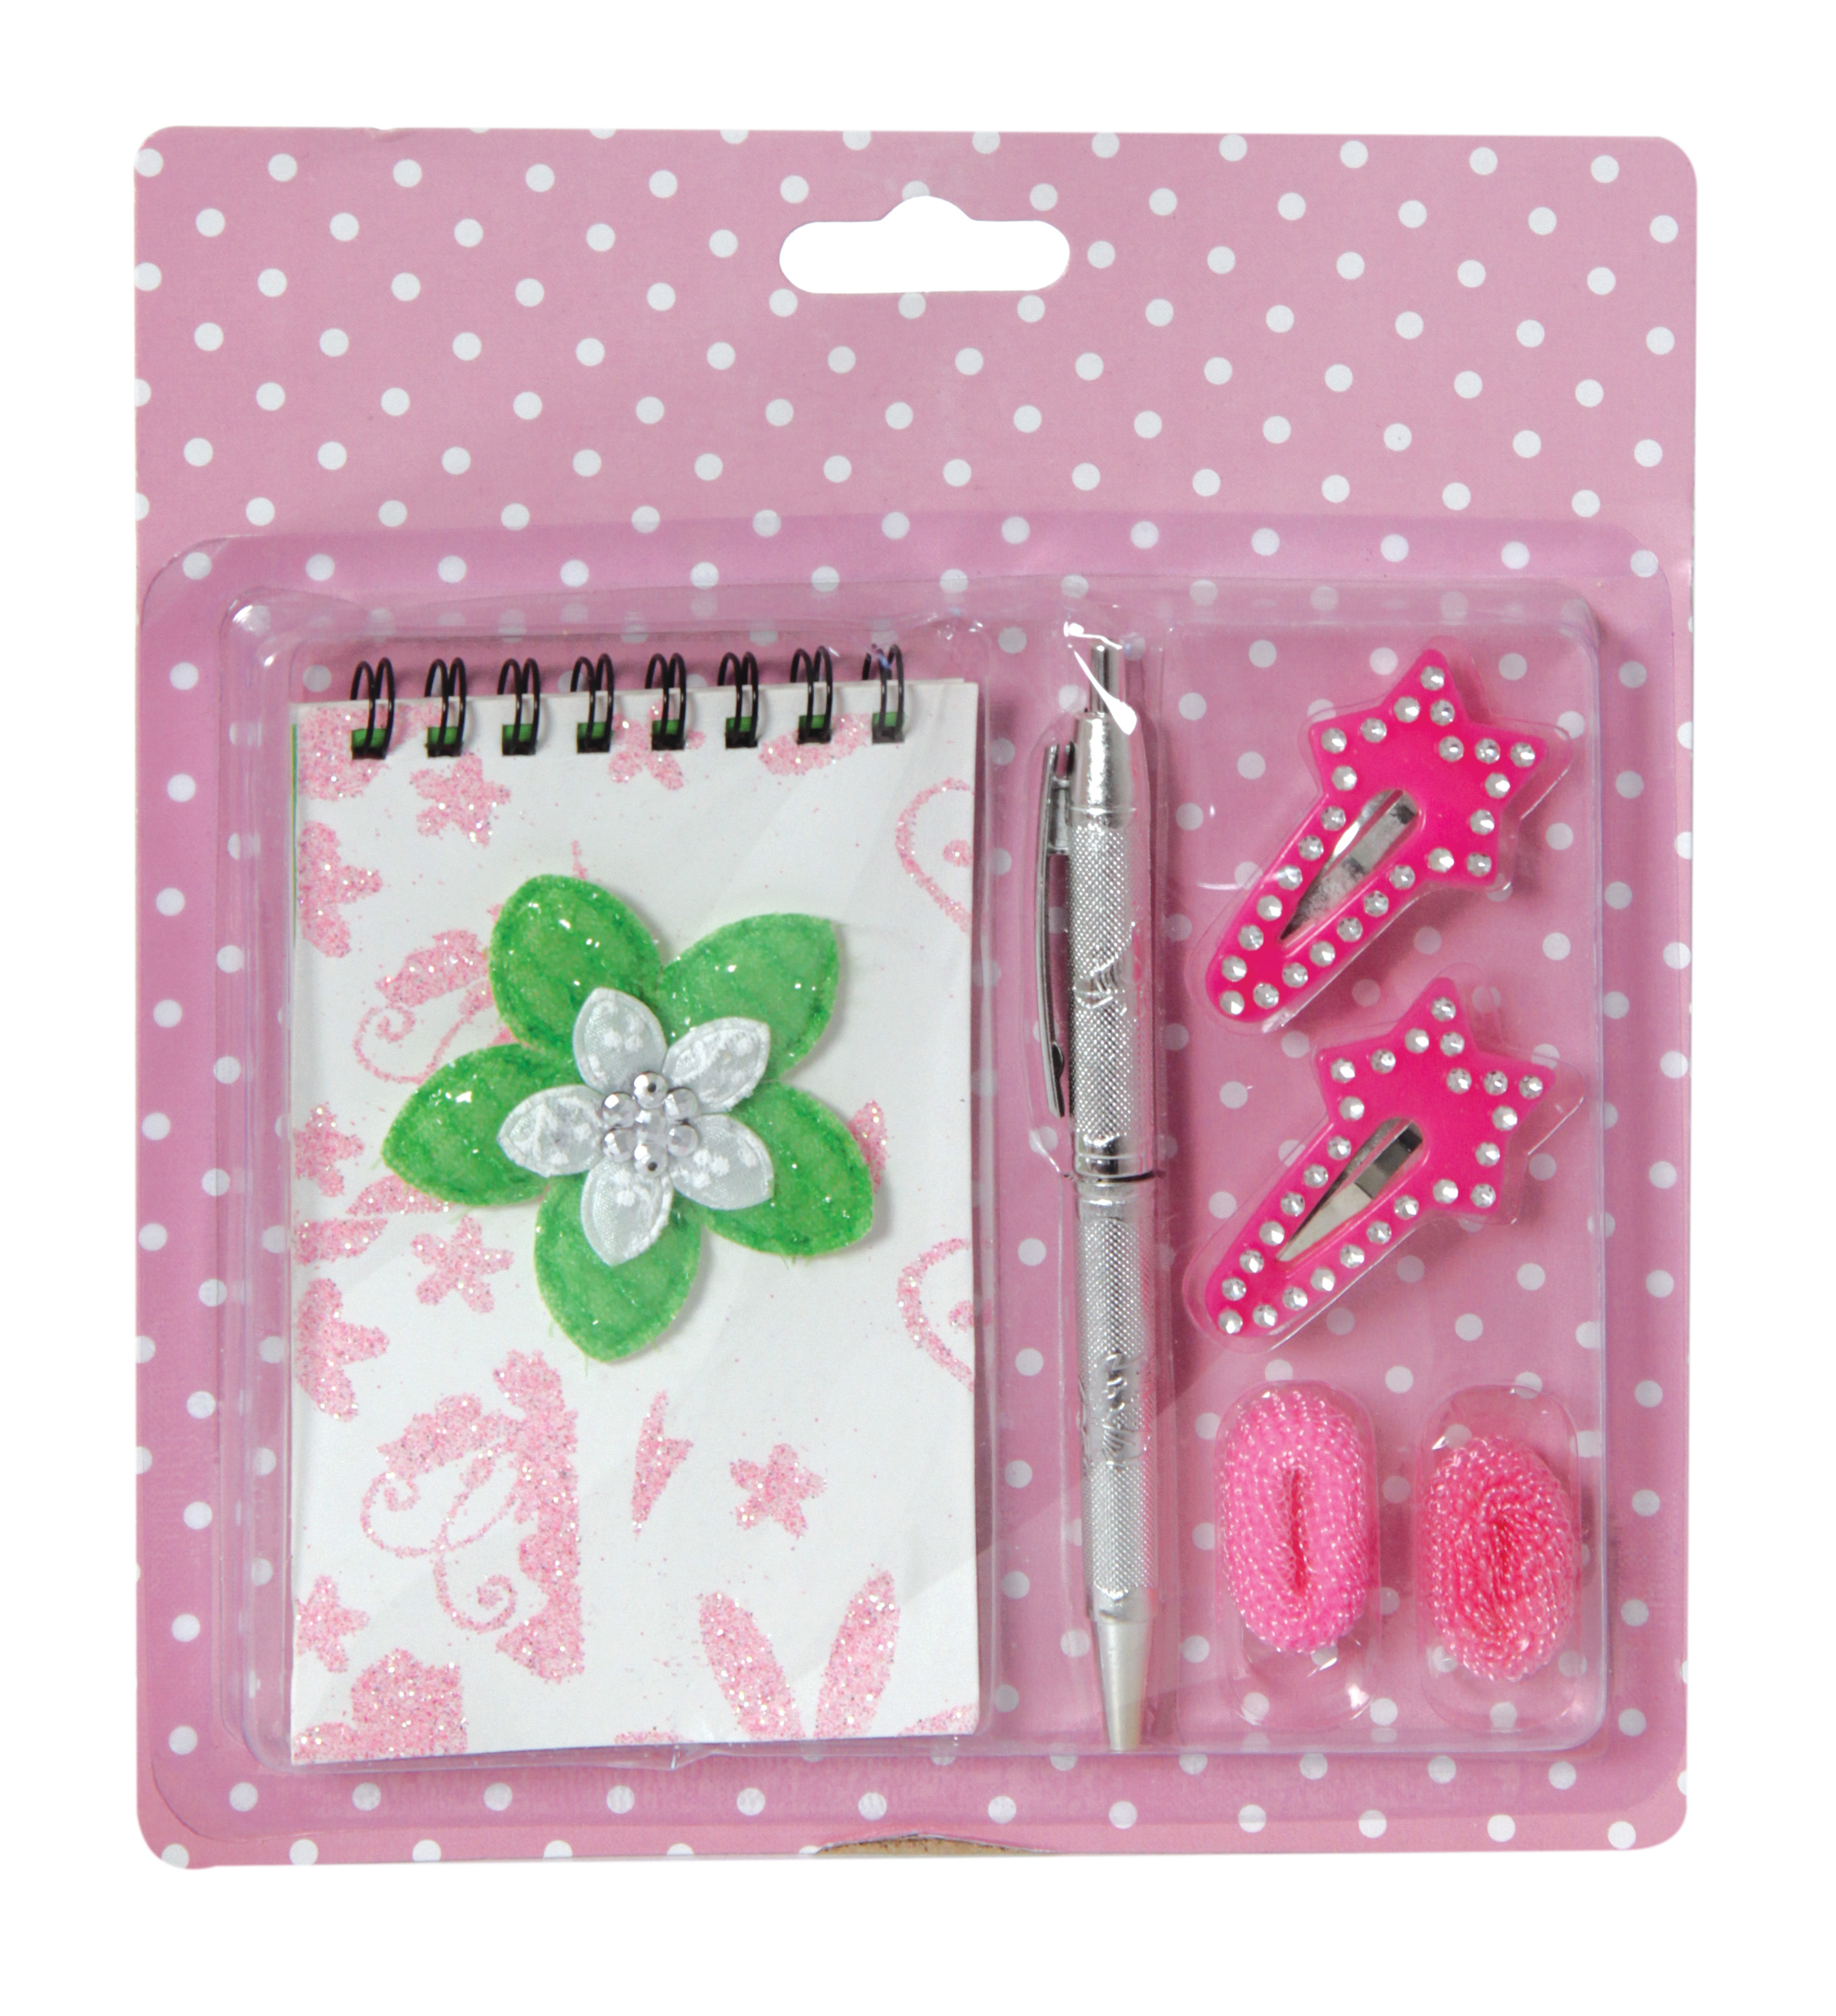 lucky Note book with pen